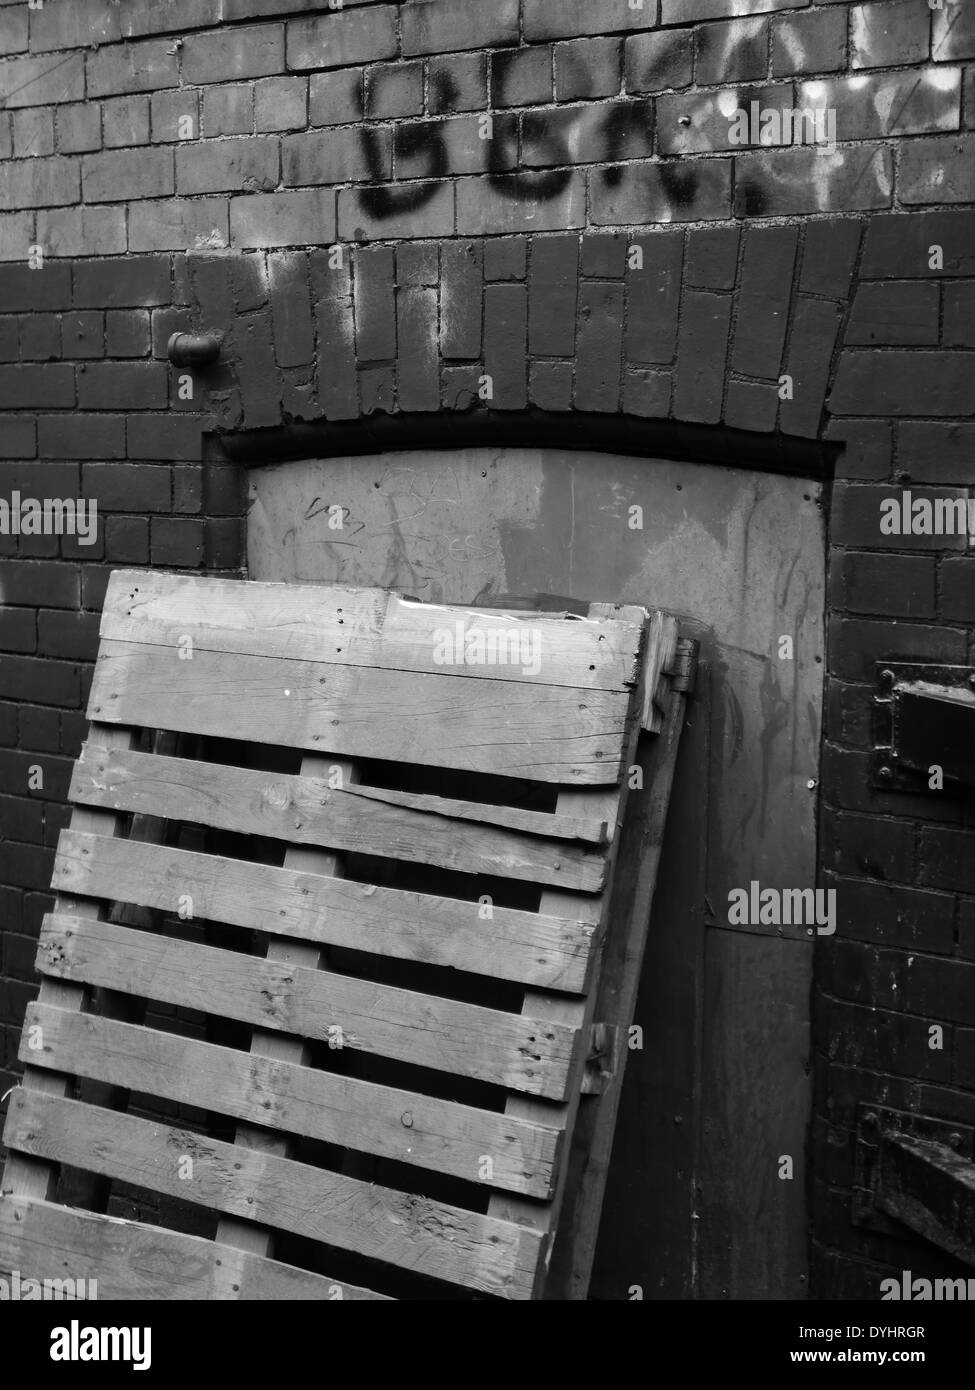 Monochrome image - Urban street scene, showing discarded wooden pallet leaning against a wall, Newcastle upon Tyne, England, UK - Stock Image